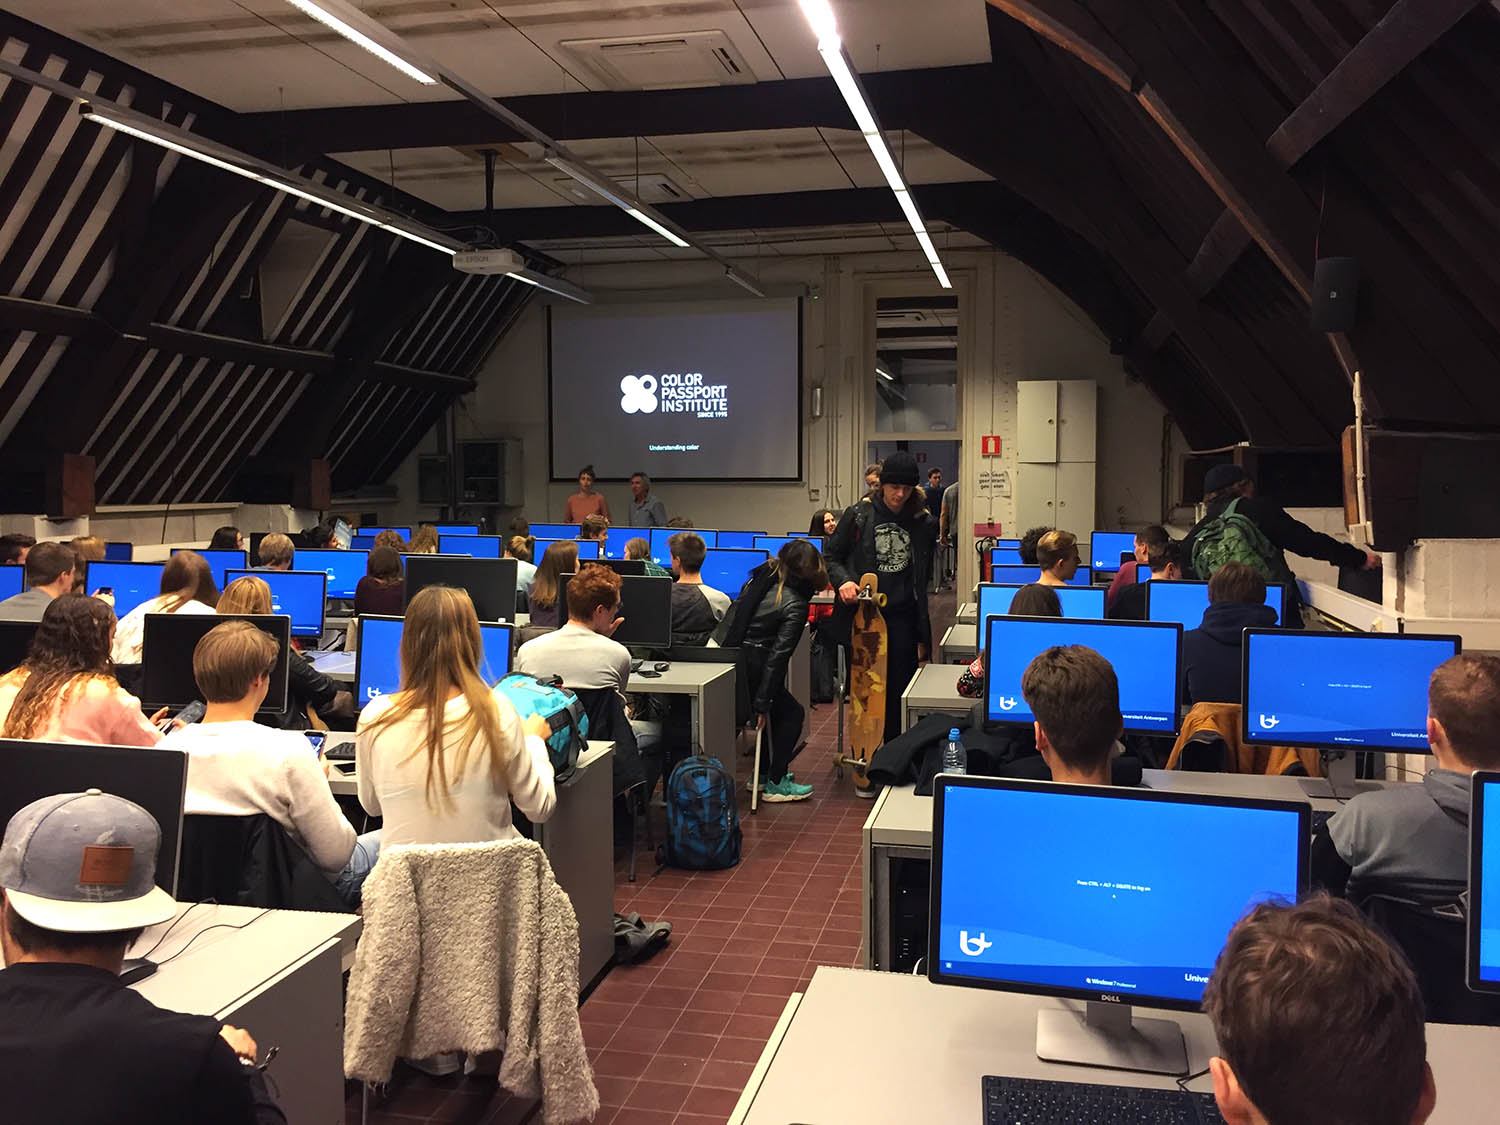 Color training at University of Antwerp